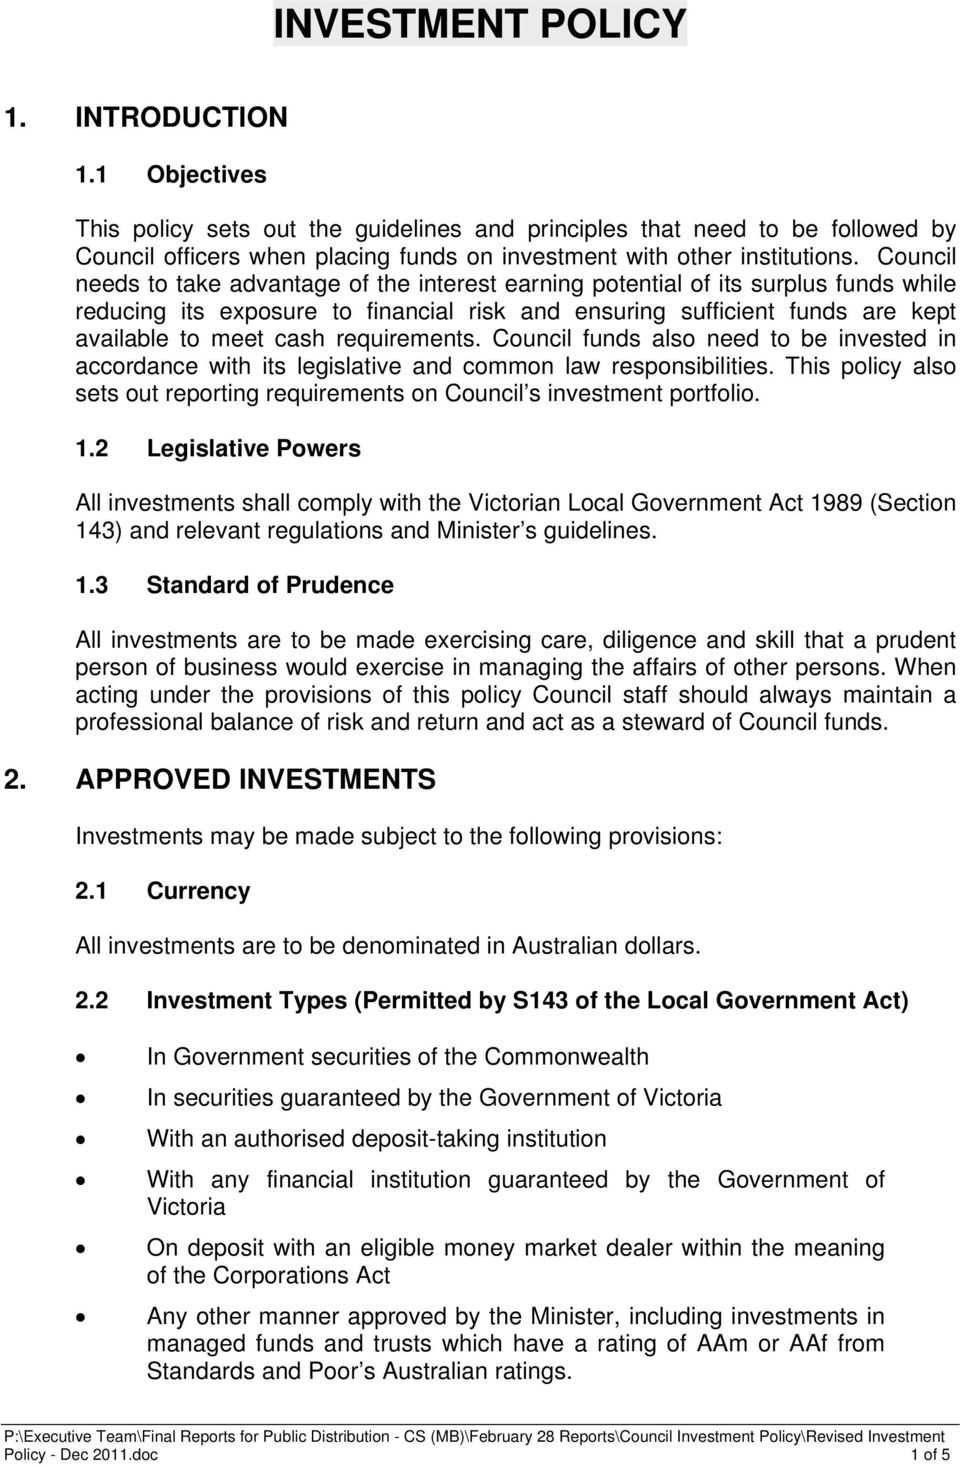 requirements. Council funds also need to be invested in accordance with its legislative and common law responsibilities.